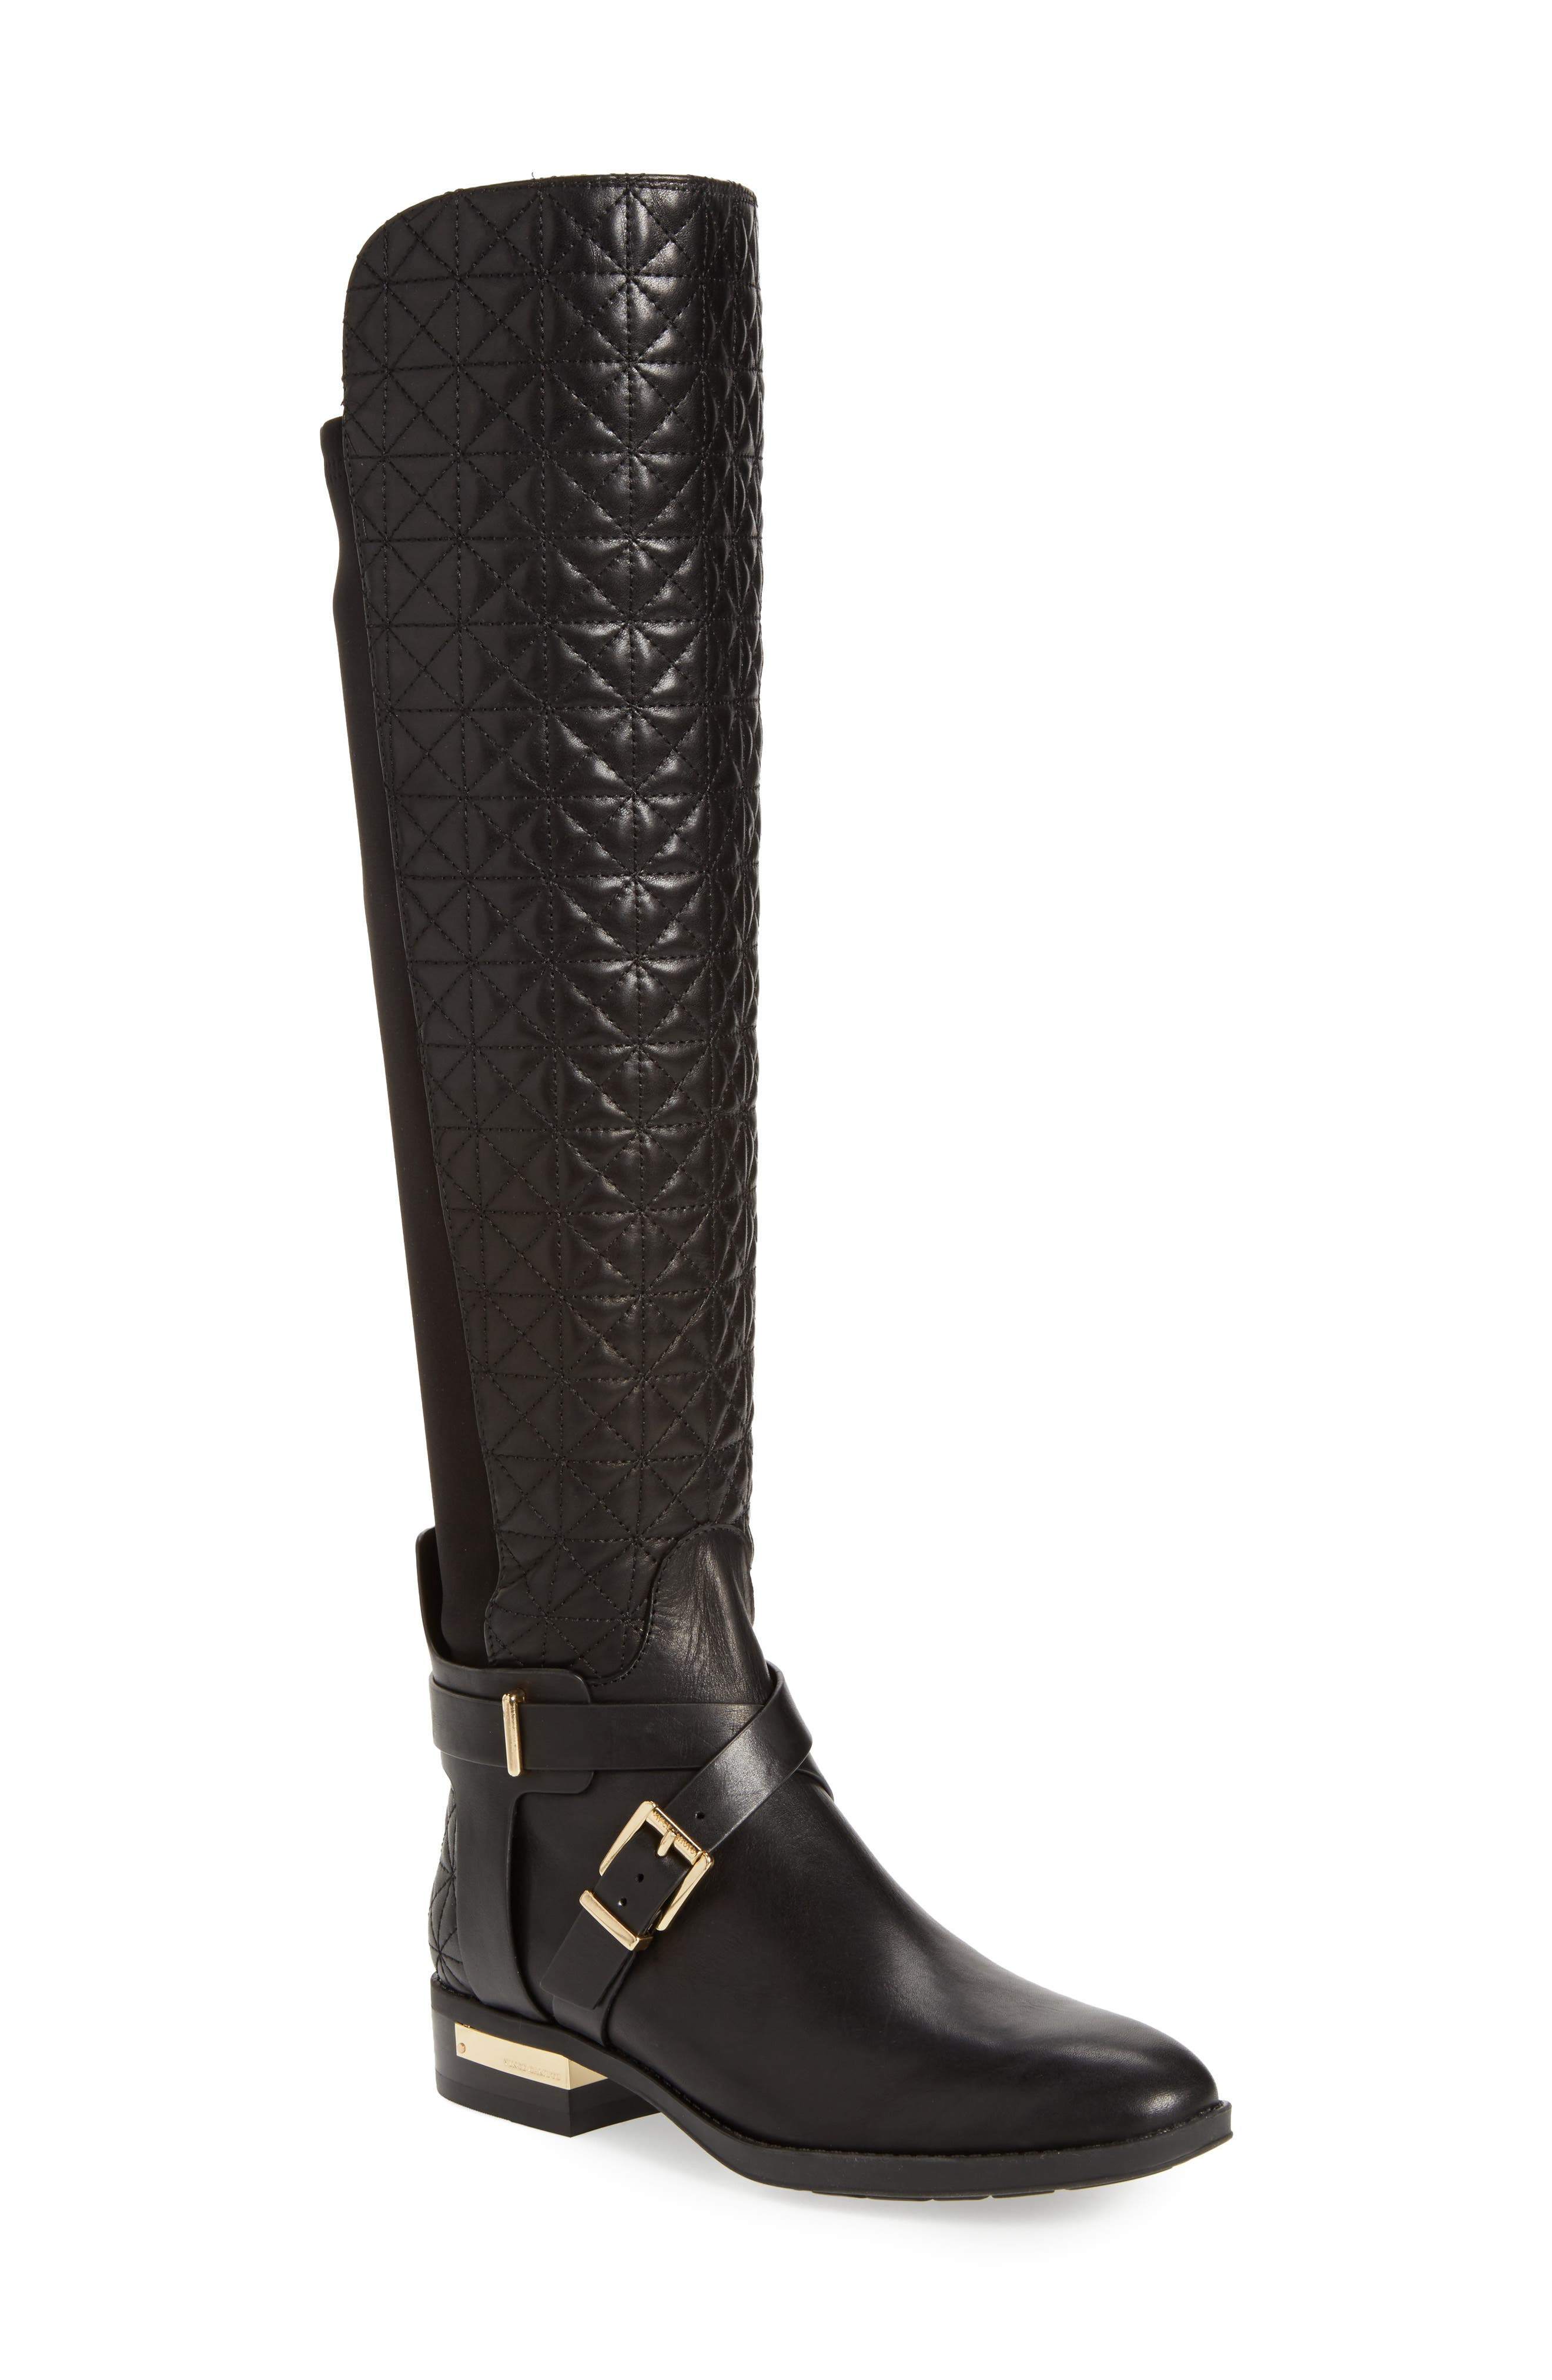 Alternate Image 1 Selected - Vince Camuto Patira Over the Knee Boot (Women)